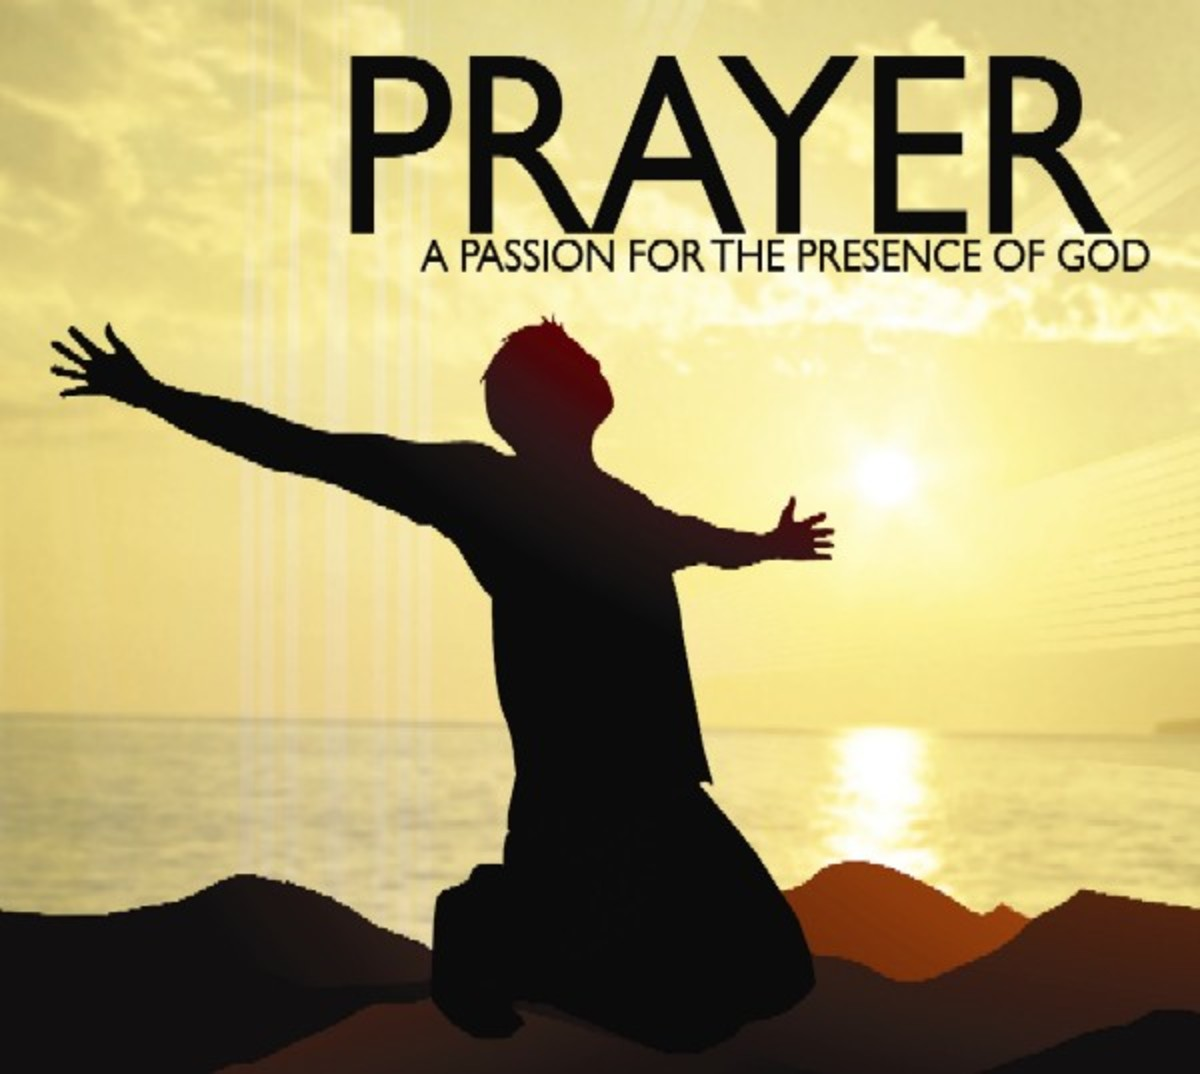 Here we are praying dear readers, because we believe in the presence of God that exists everywhere in the universe, so, we pray to our spiritual Father whichever way our heart tells us to pray. May God hear our prayer?